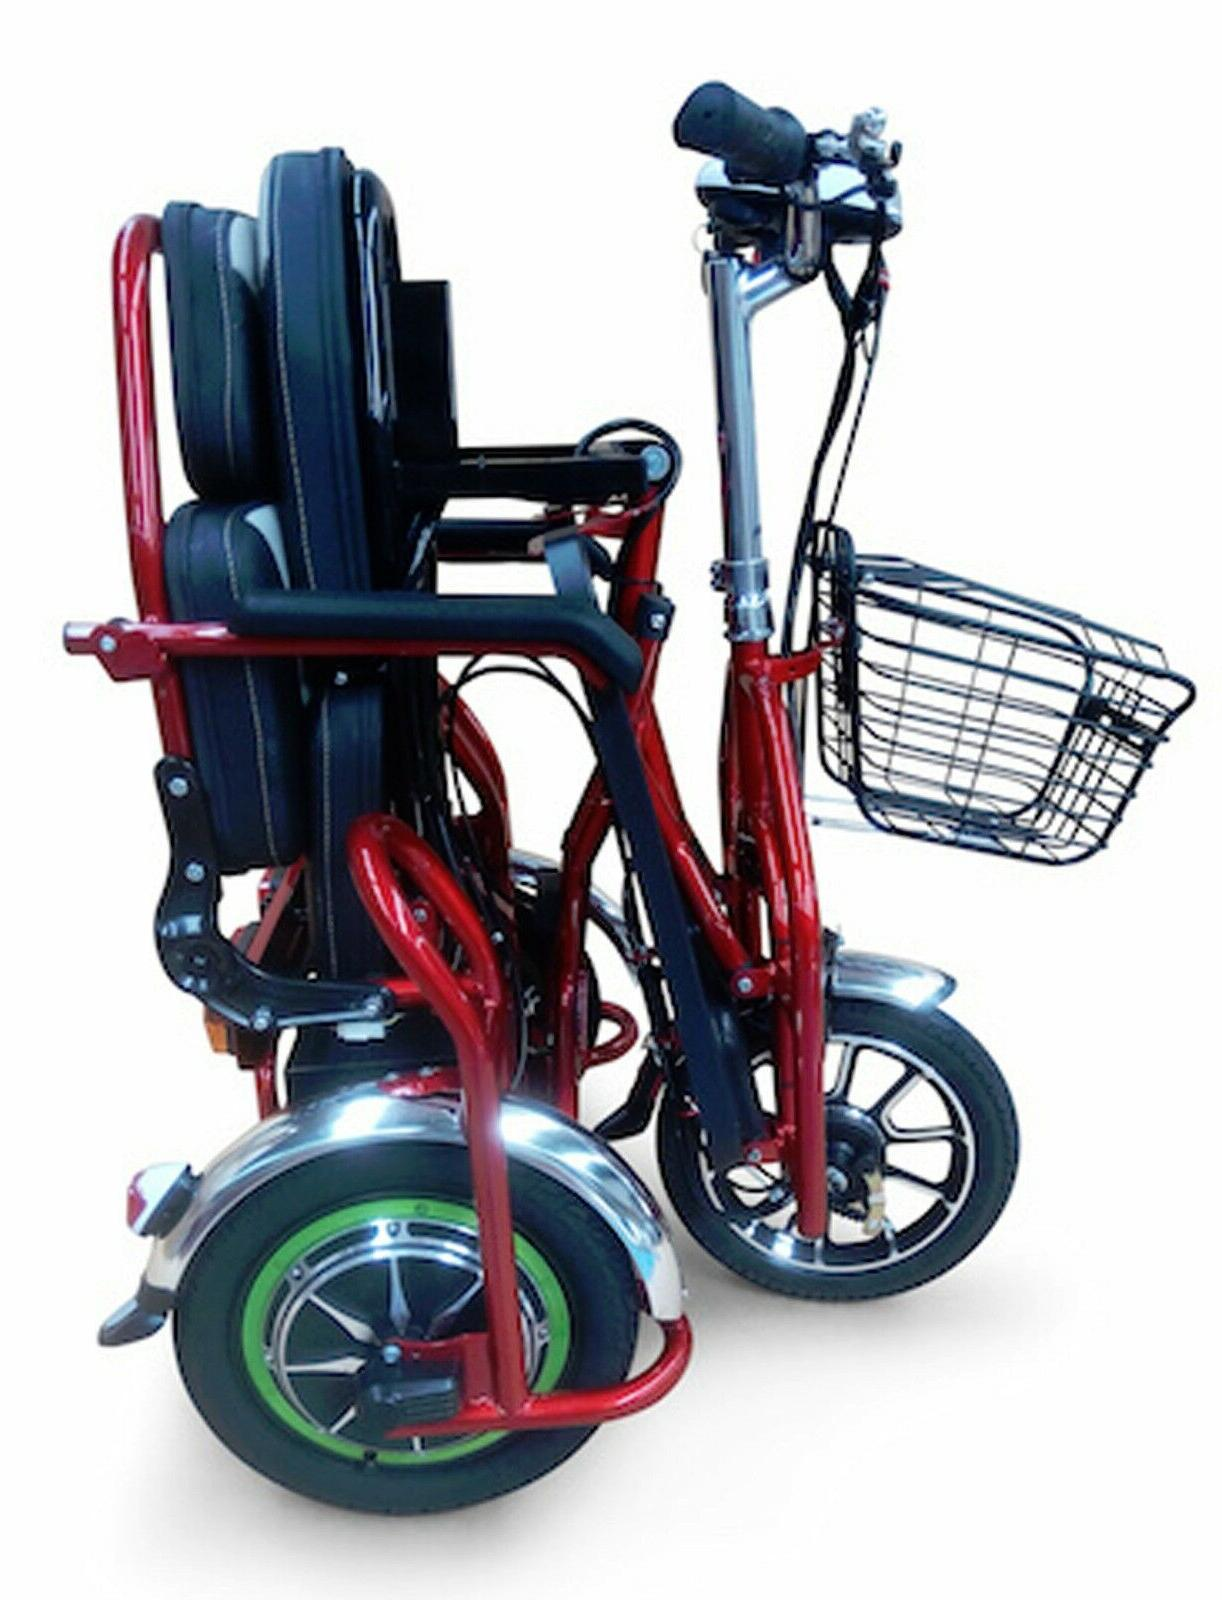 NEW EWheels Heavy Duty Scooter for 1 Riders, Goes Up